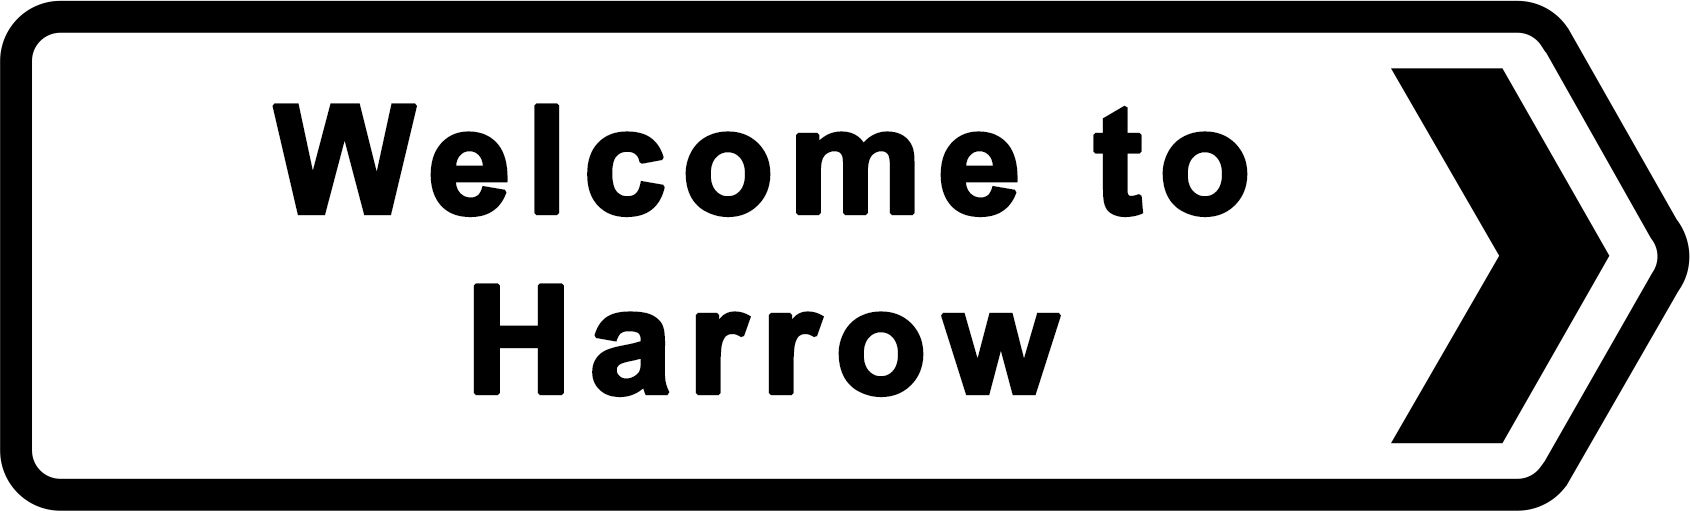 Harrow County School - Cheap Driving Schools Lessons in Harrow, HA1/HA2/HA3, London borough of Harrow, Greater London